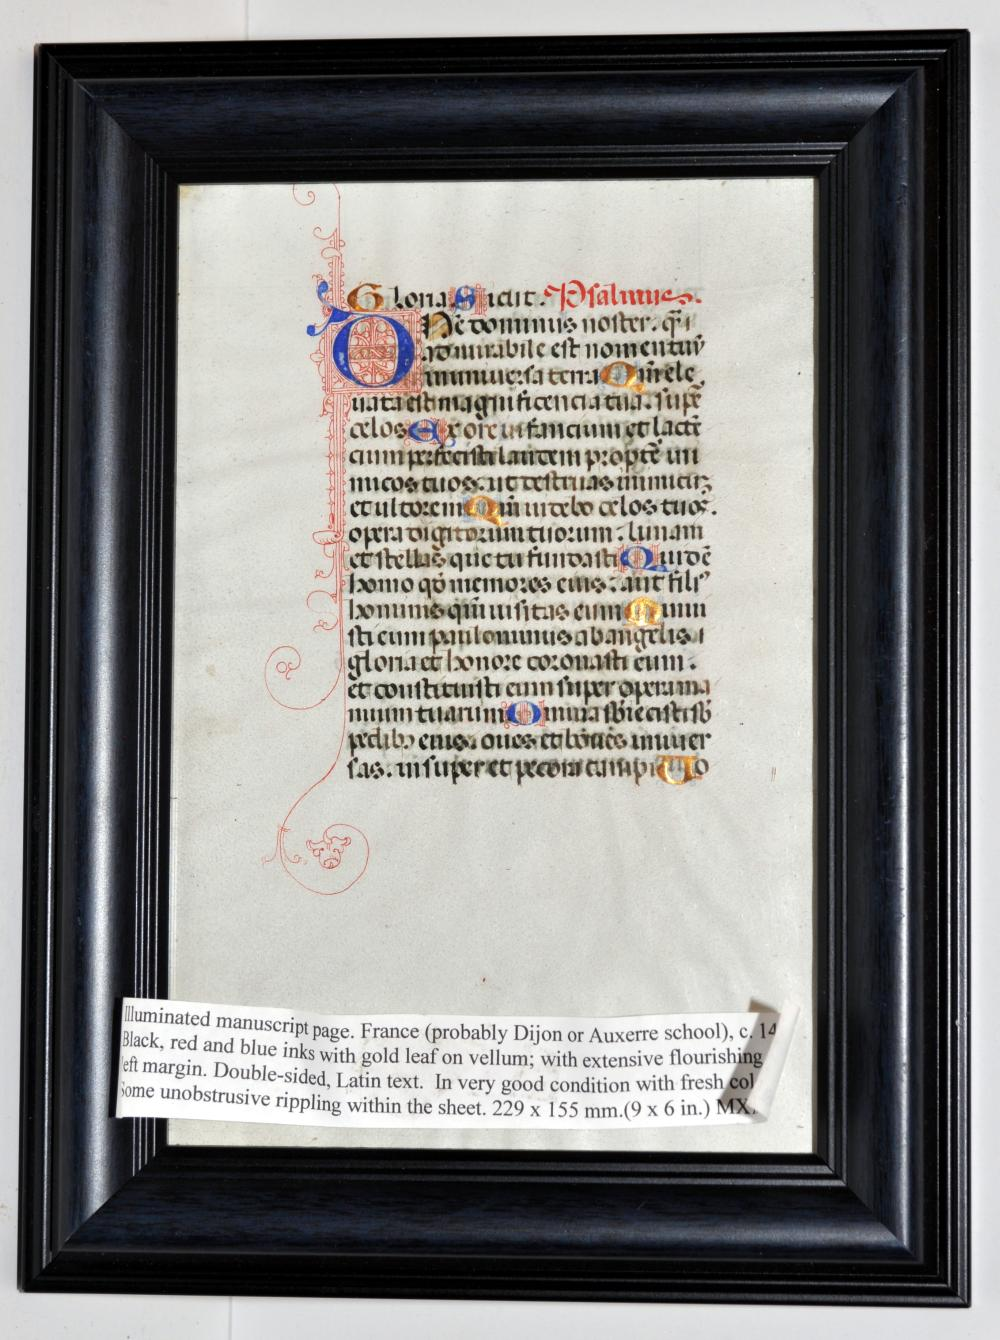 Illuminated manuscript French framed